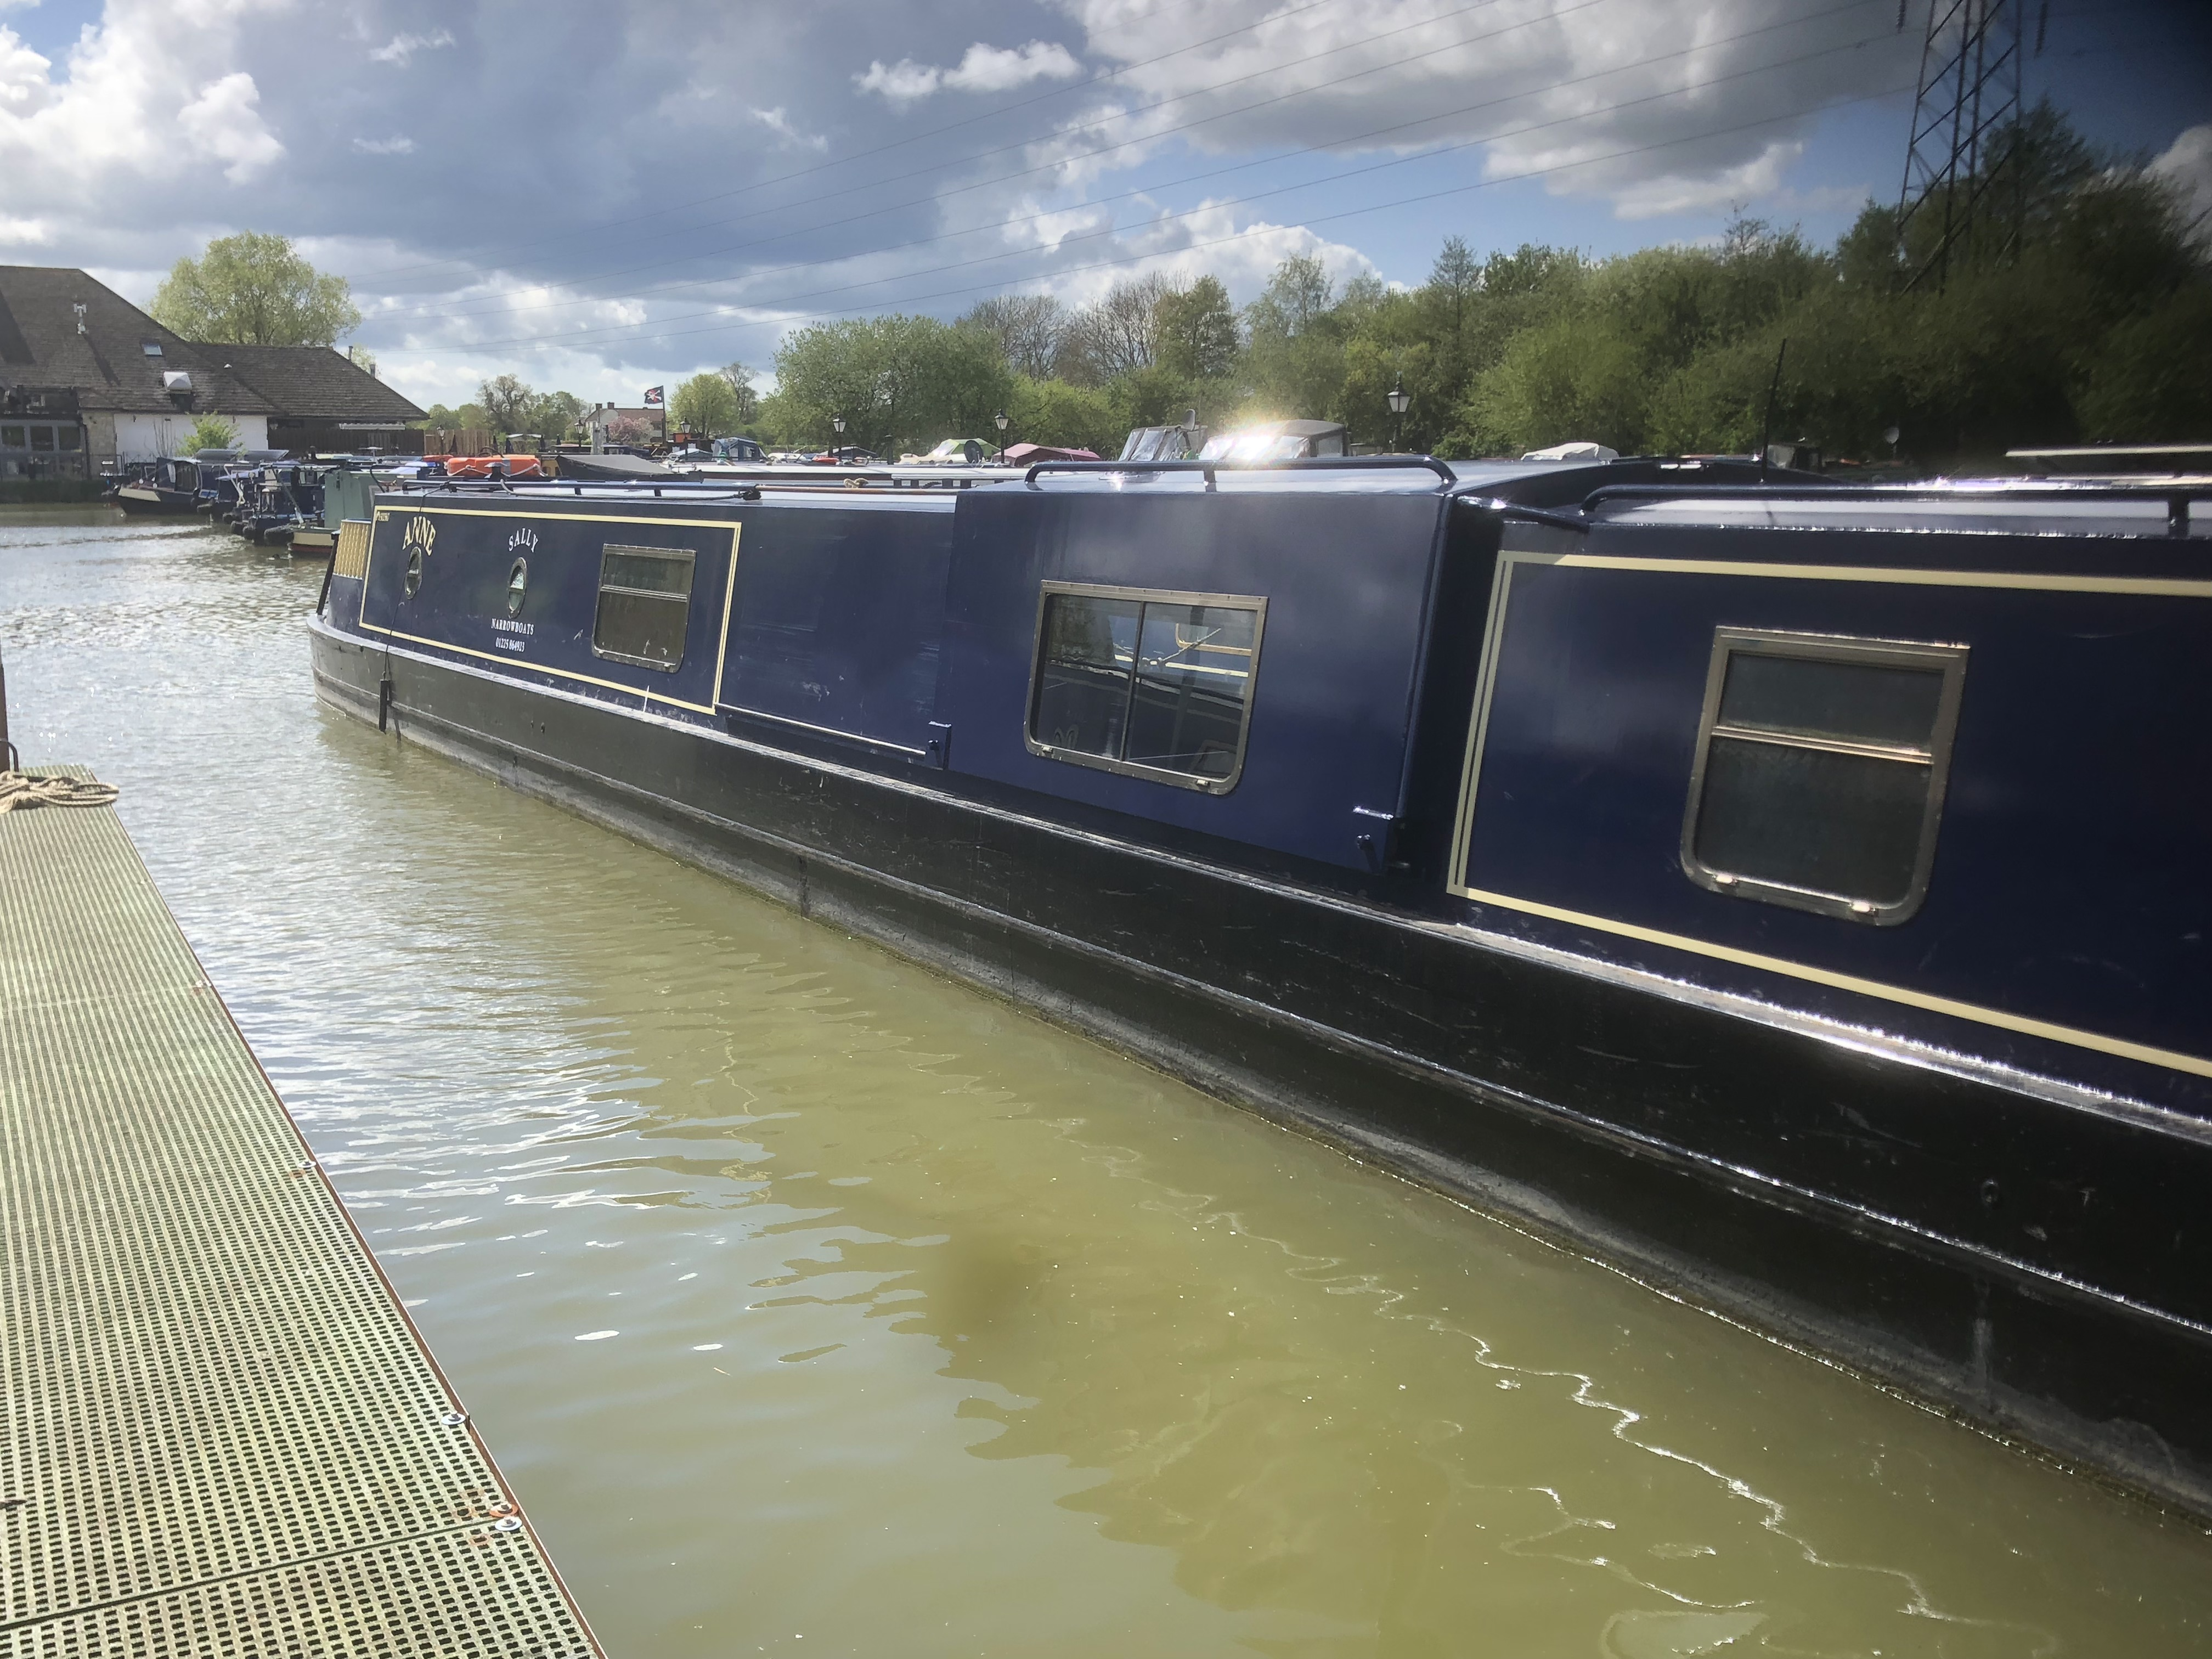 The S-Anne class canal boat